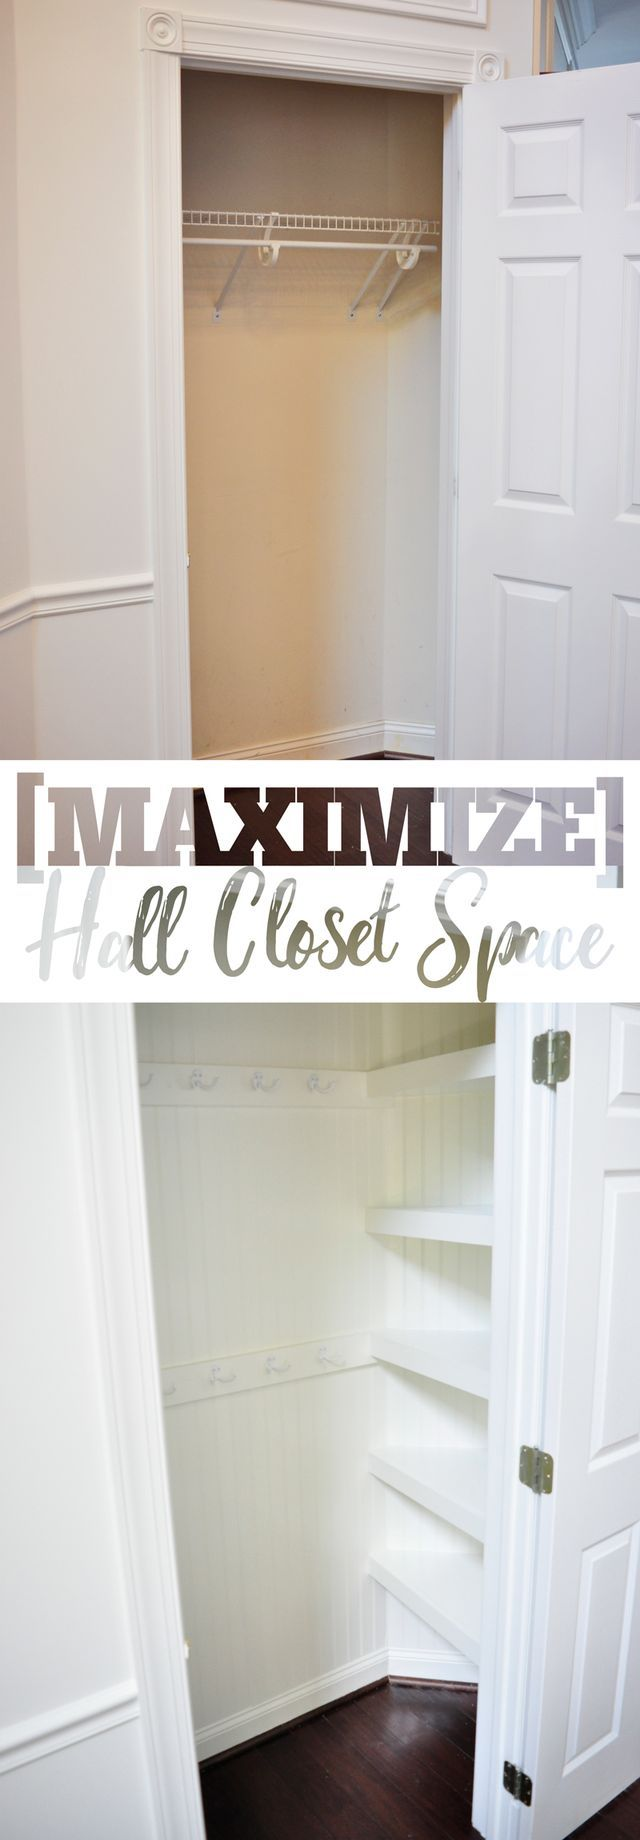 Tips And Tricks Maximizing Hall Closet Storage (Remodelaholic)